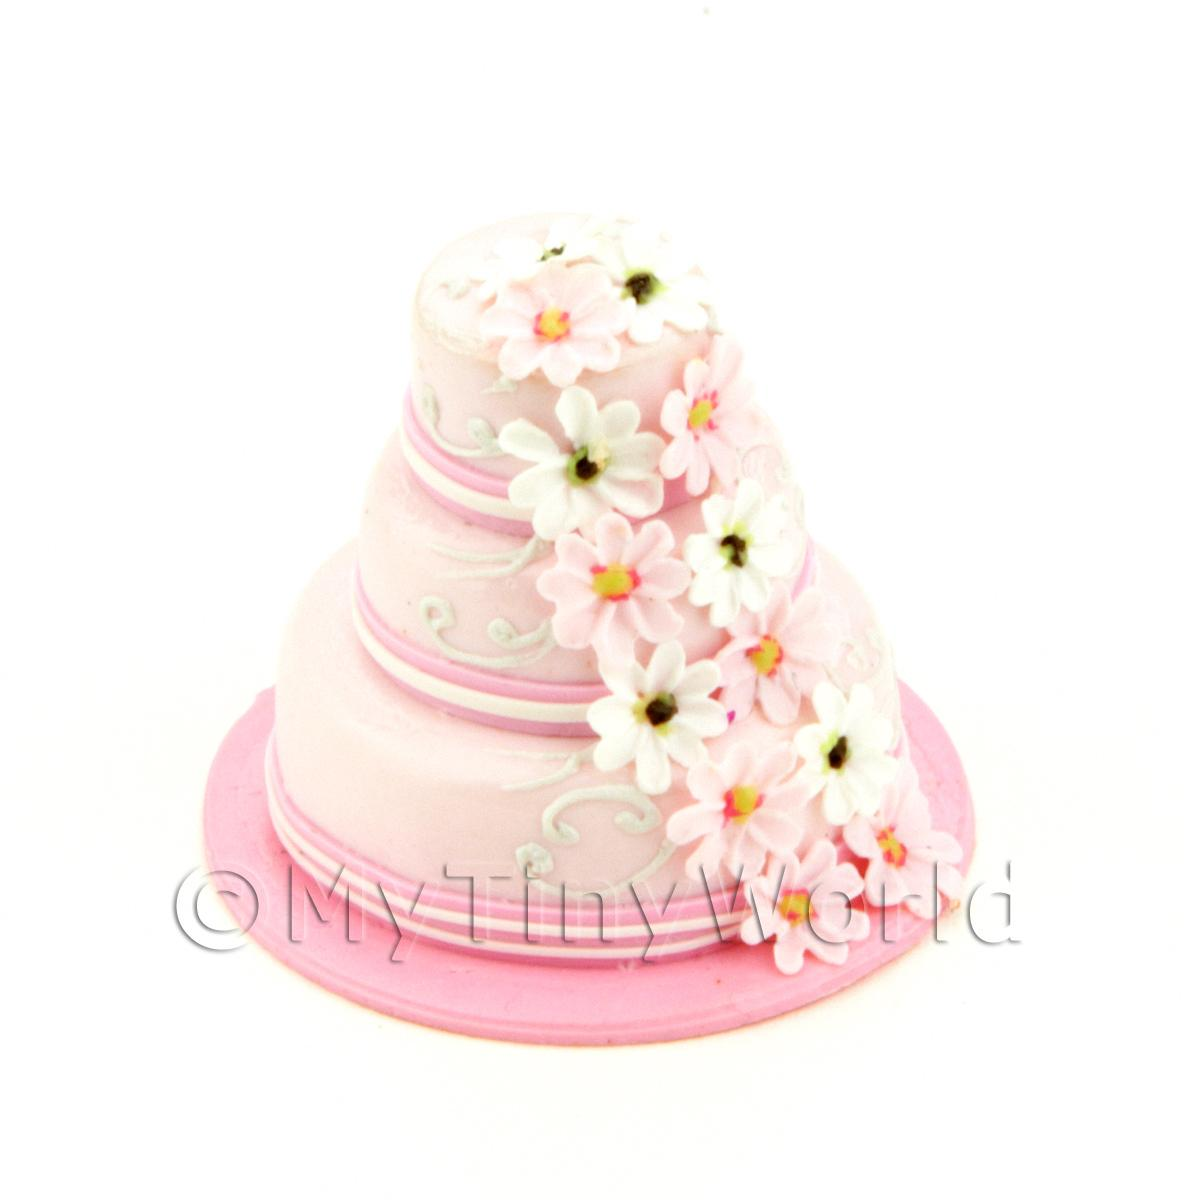 Dolls House Miniature 3 Tier Pink Cake With Daisies